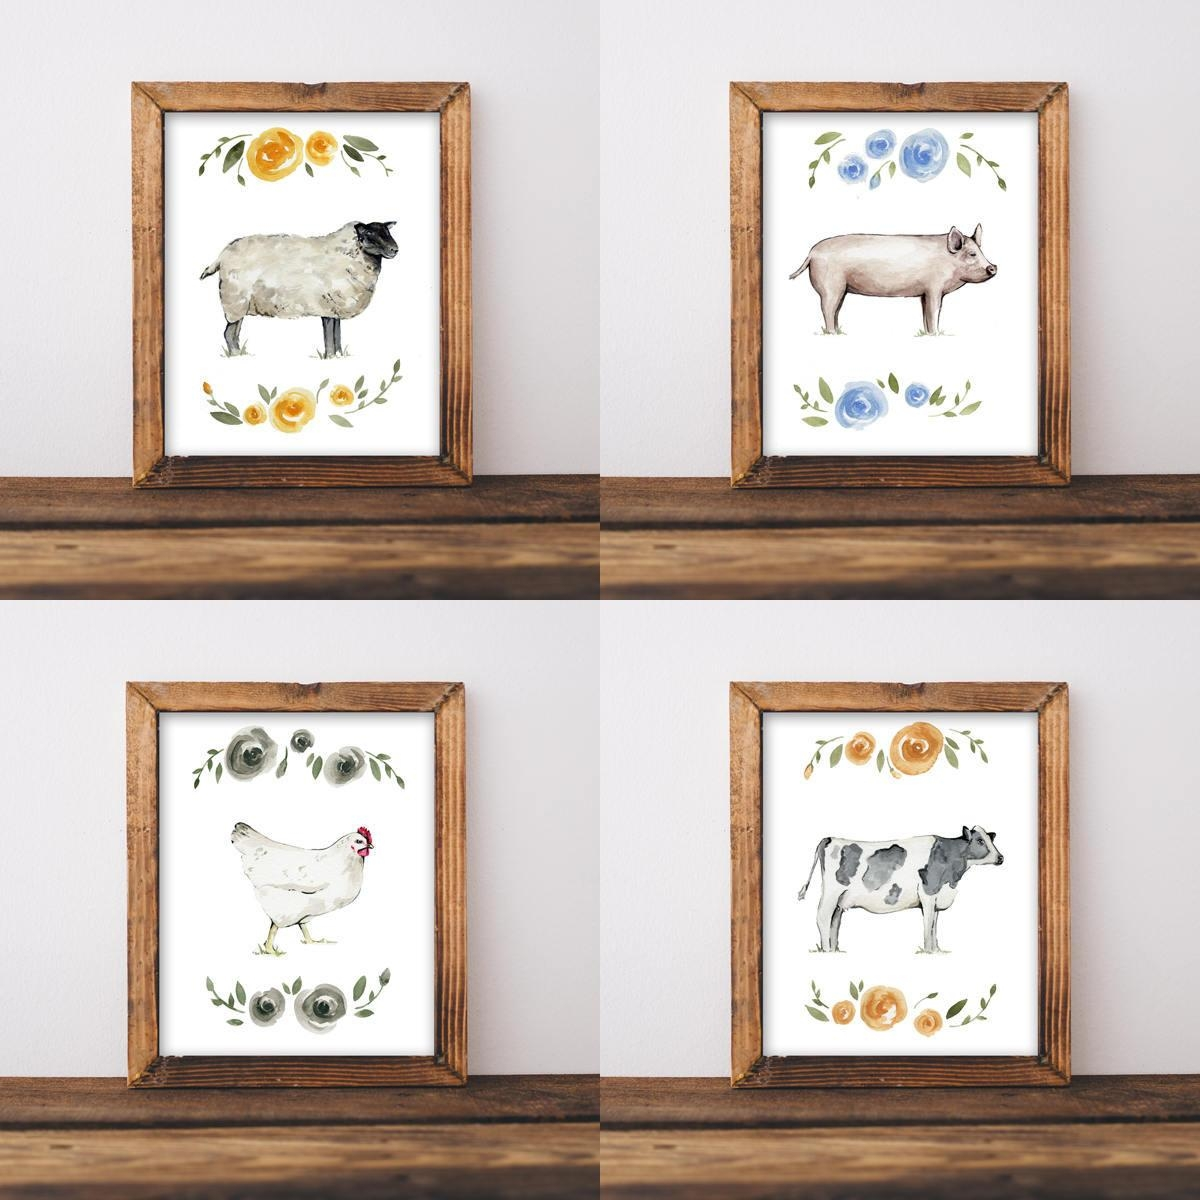 Farmhouse Wall Art, Nursery Wall Art, Shabby Chic Wall Art, Animal Intended For Shabby Chic Wall Art (Image 9 of 20)